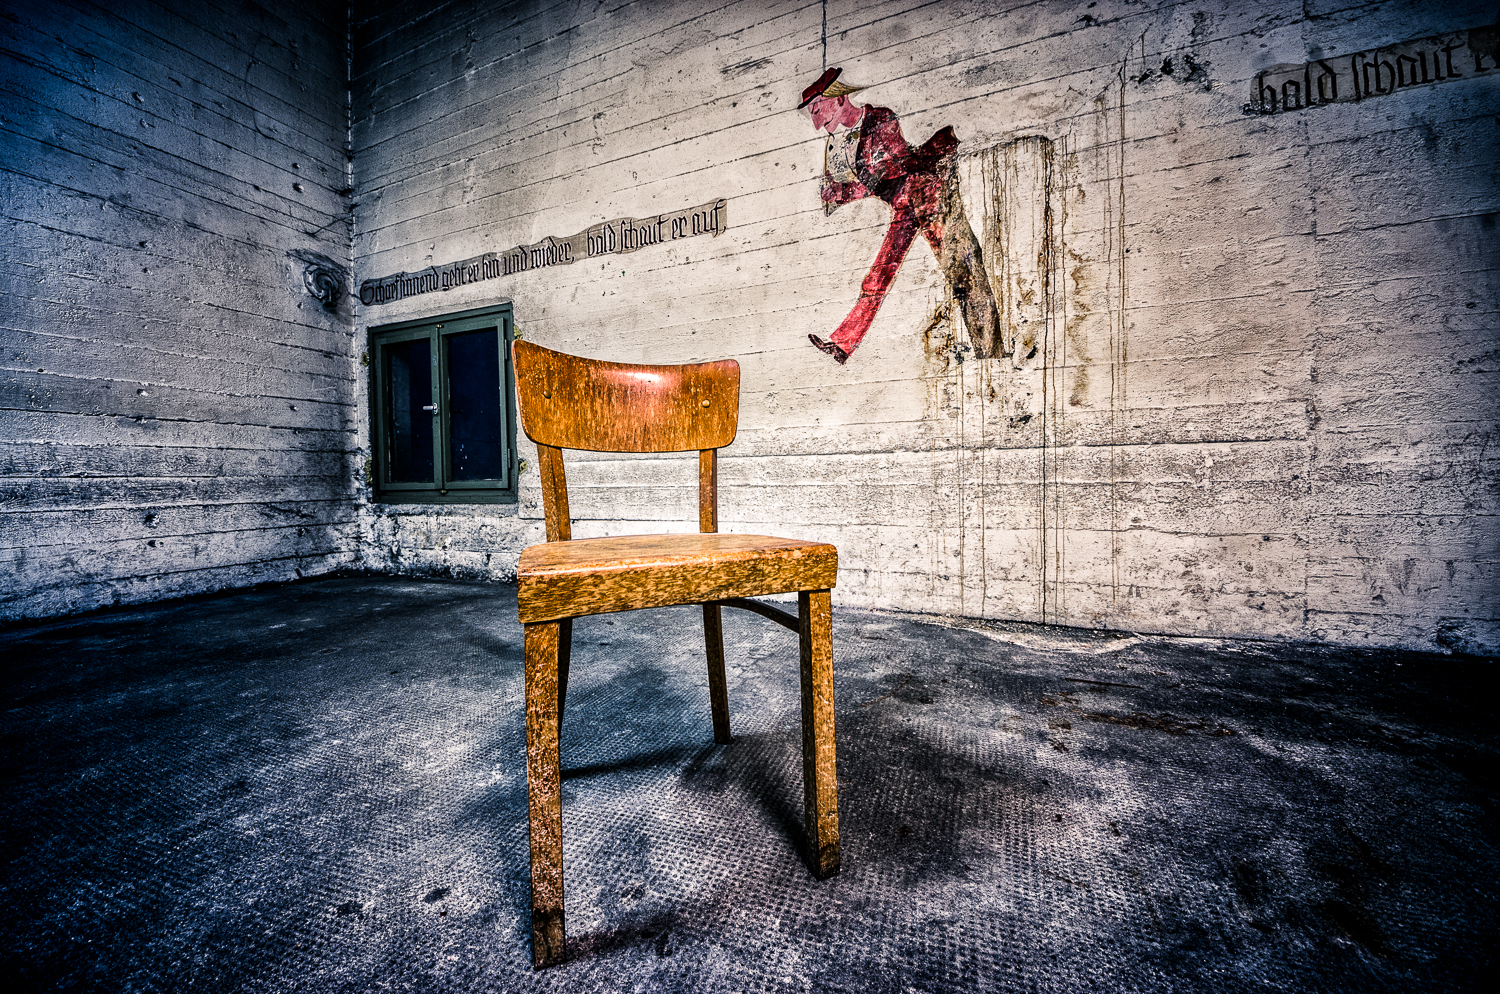 The shelter # 2 - The empty chair